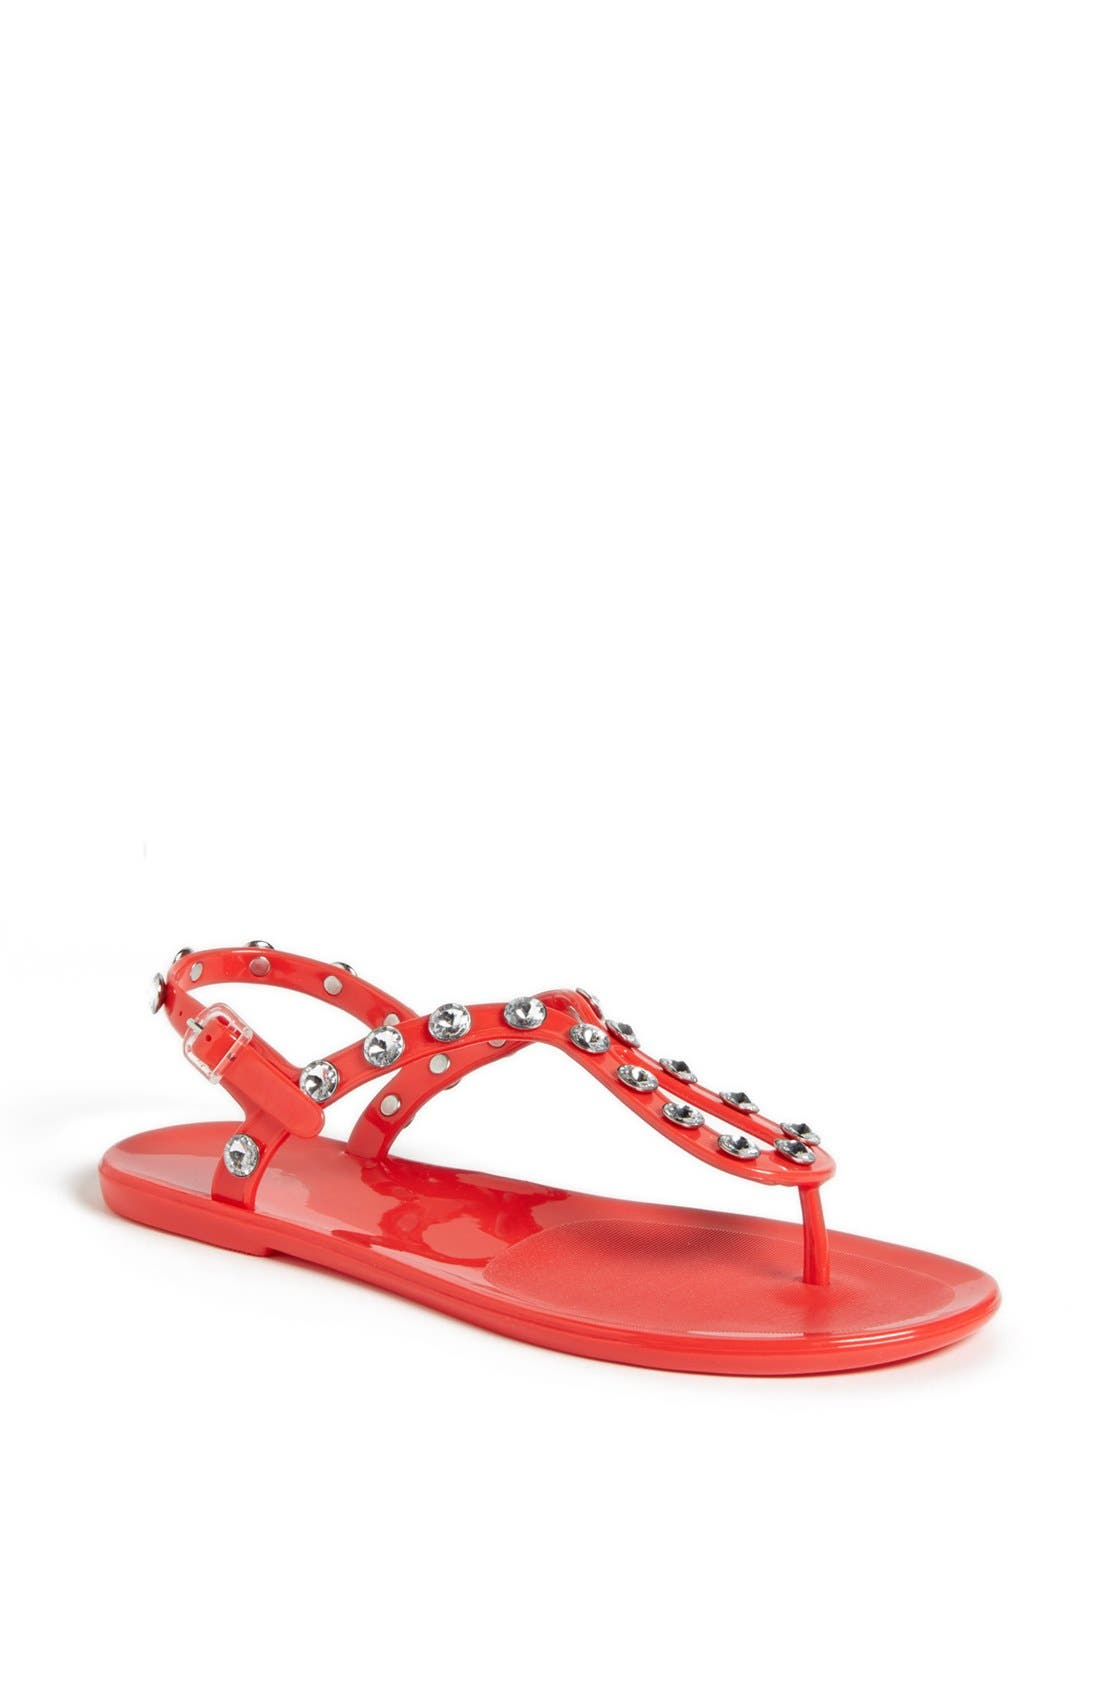 Main Image - Holster Fashion 'Supermodel' Jelly Thong Sandal